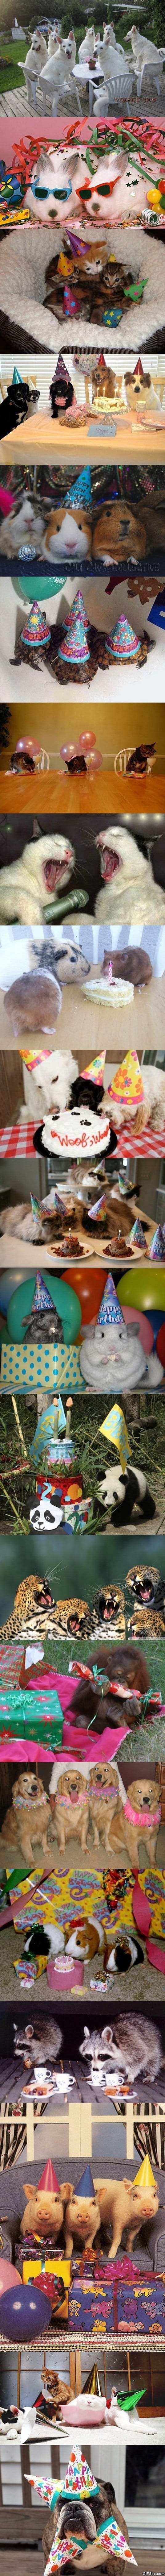 Funny - Funnest animal parties ever